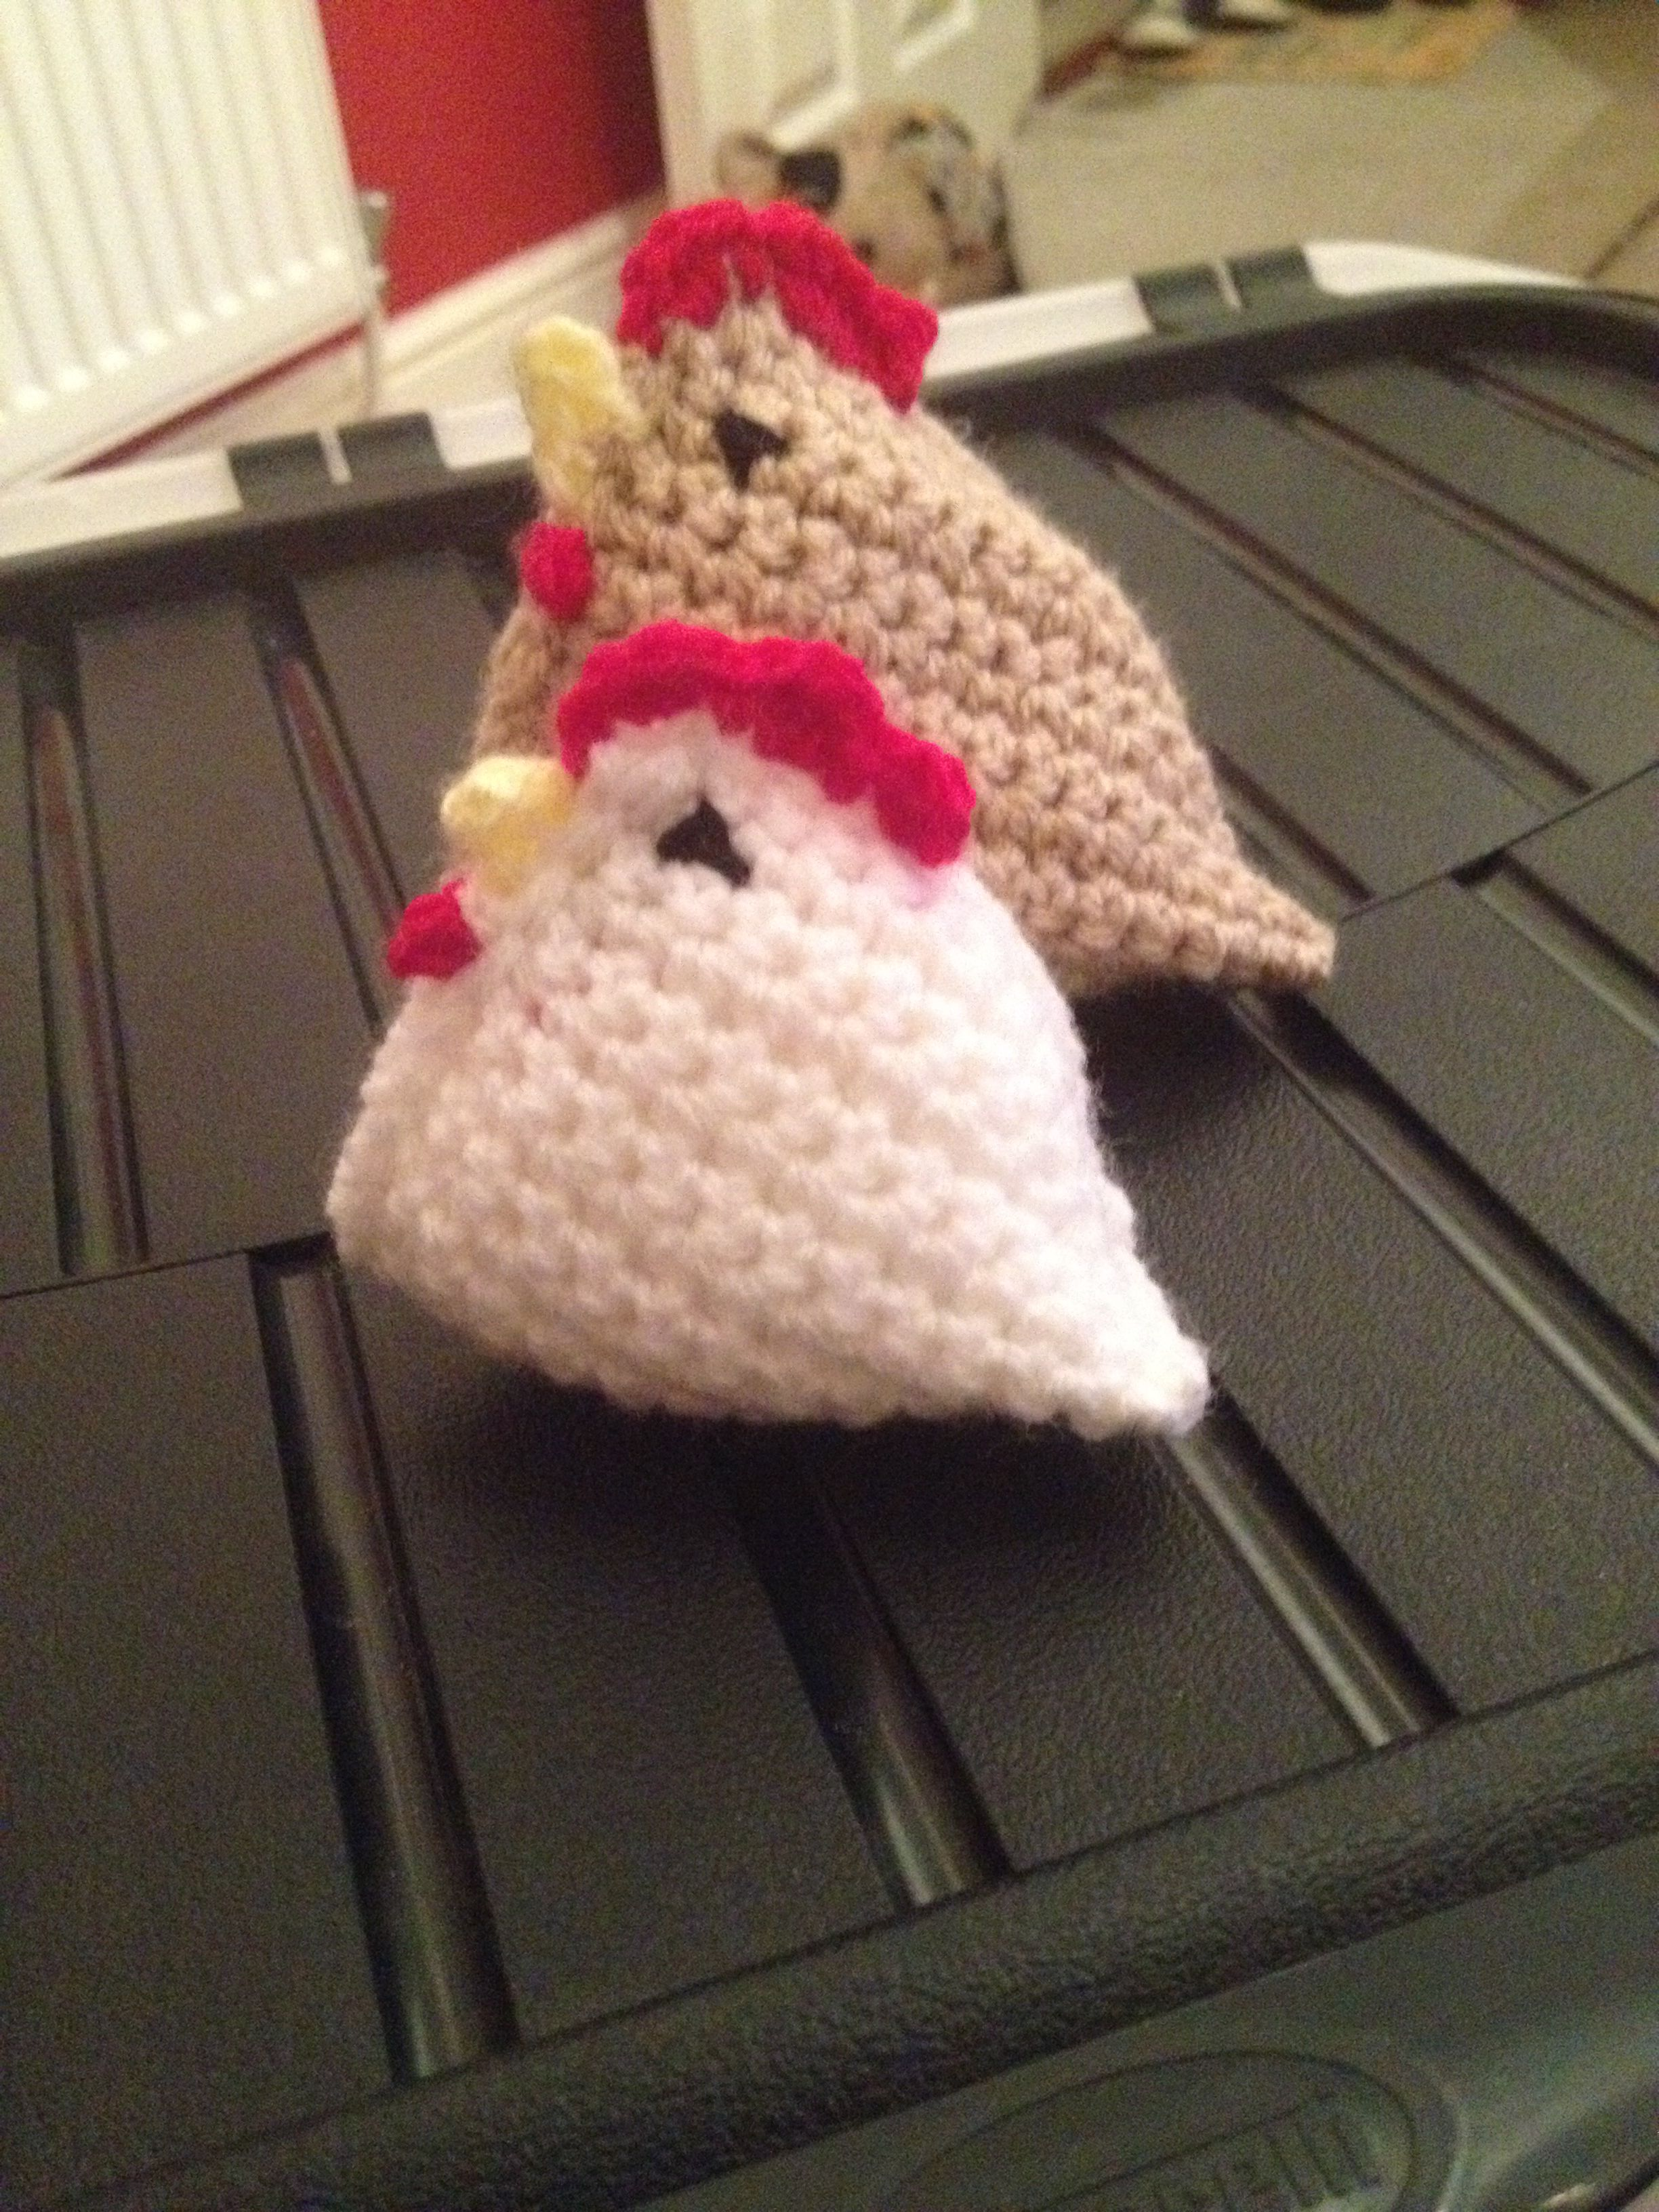 Set of crocheted chicks Make a good ornament on a kitchen mantel